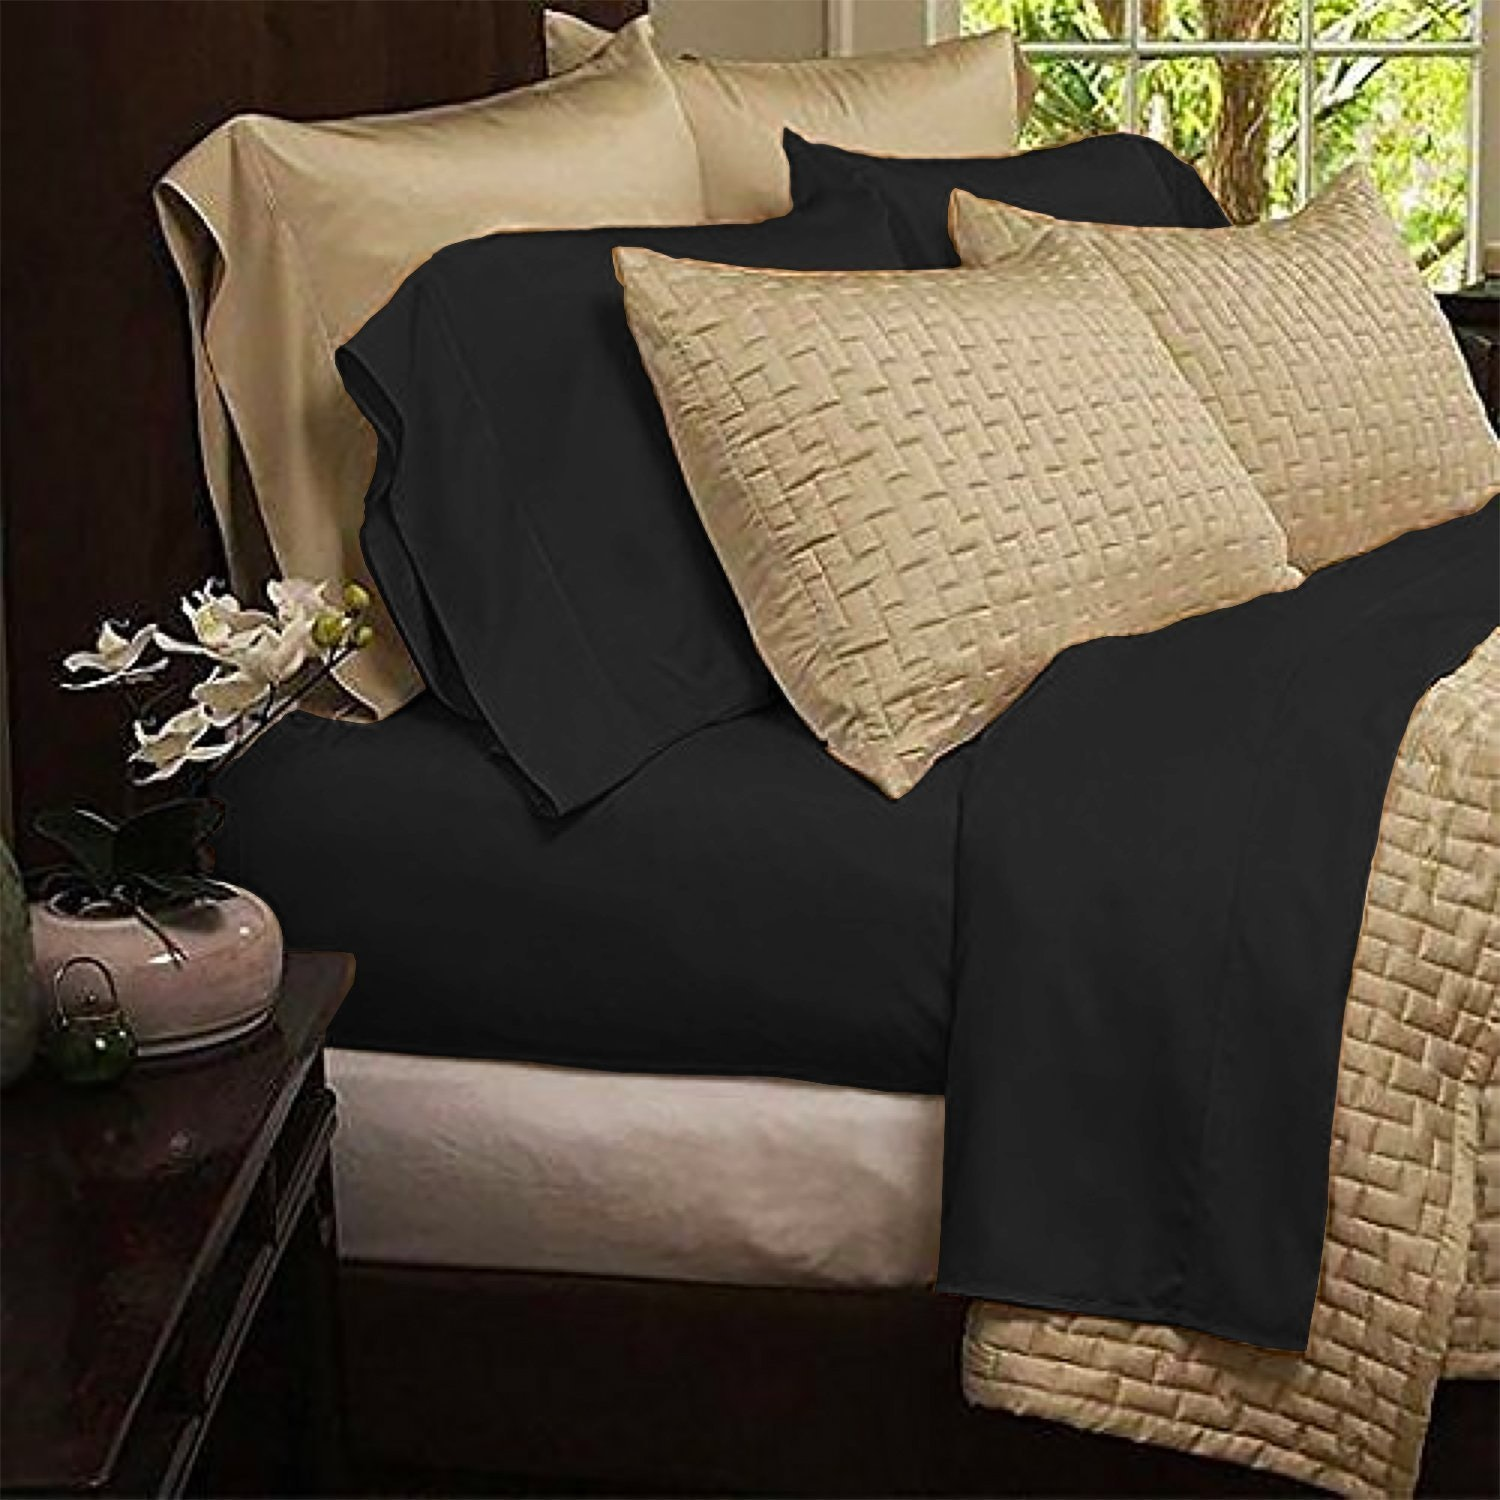 100 softest affordable sheets the best bamboo sheets may 20